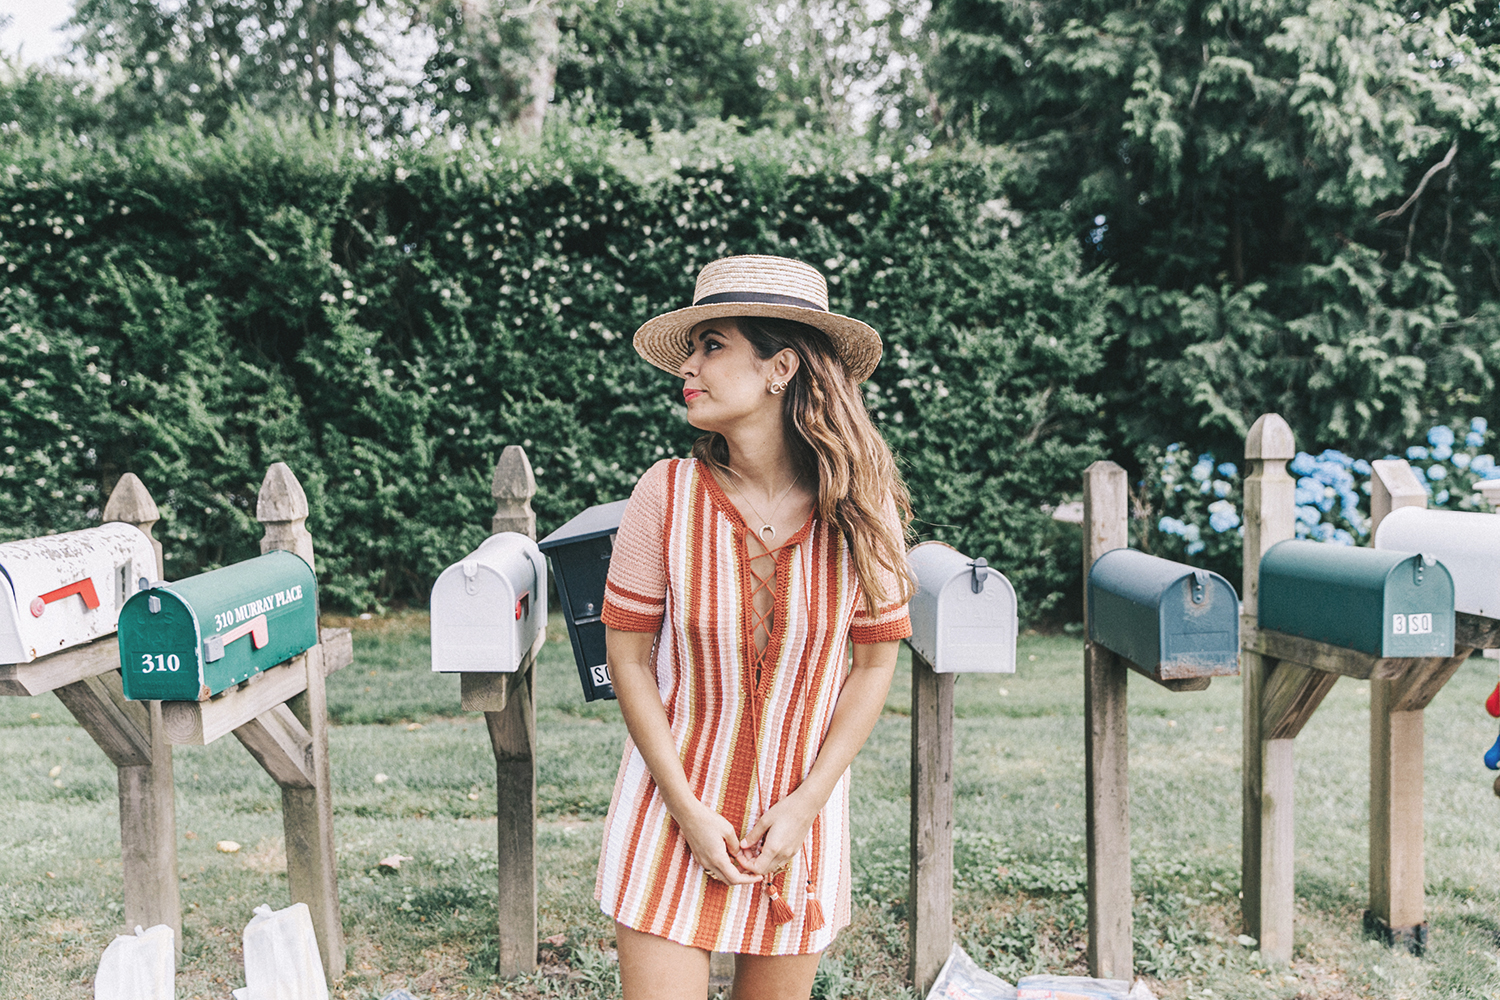 Revolve_in_The_Hamptons-Revolve_Clothing-Collage_Vintage-Free_People_Lace_Dress-Knitted_Dress-Soludos_Espadrilles-Canotier-Hat-Outfit-25